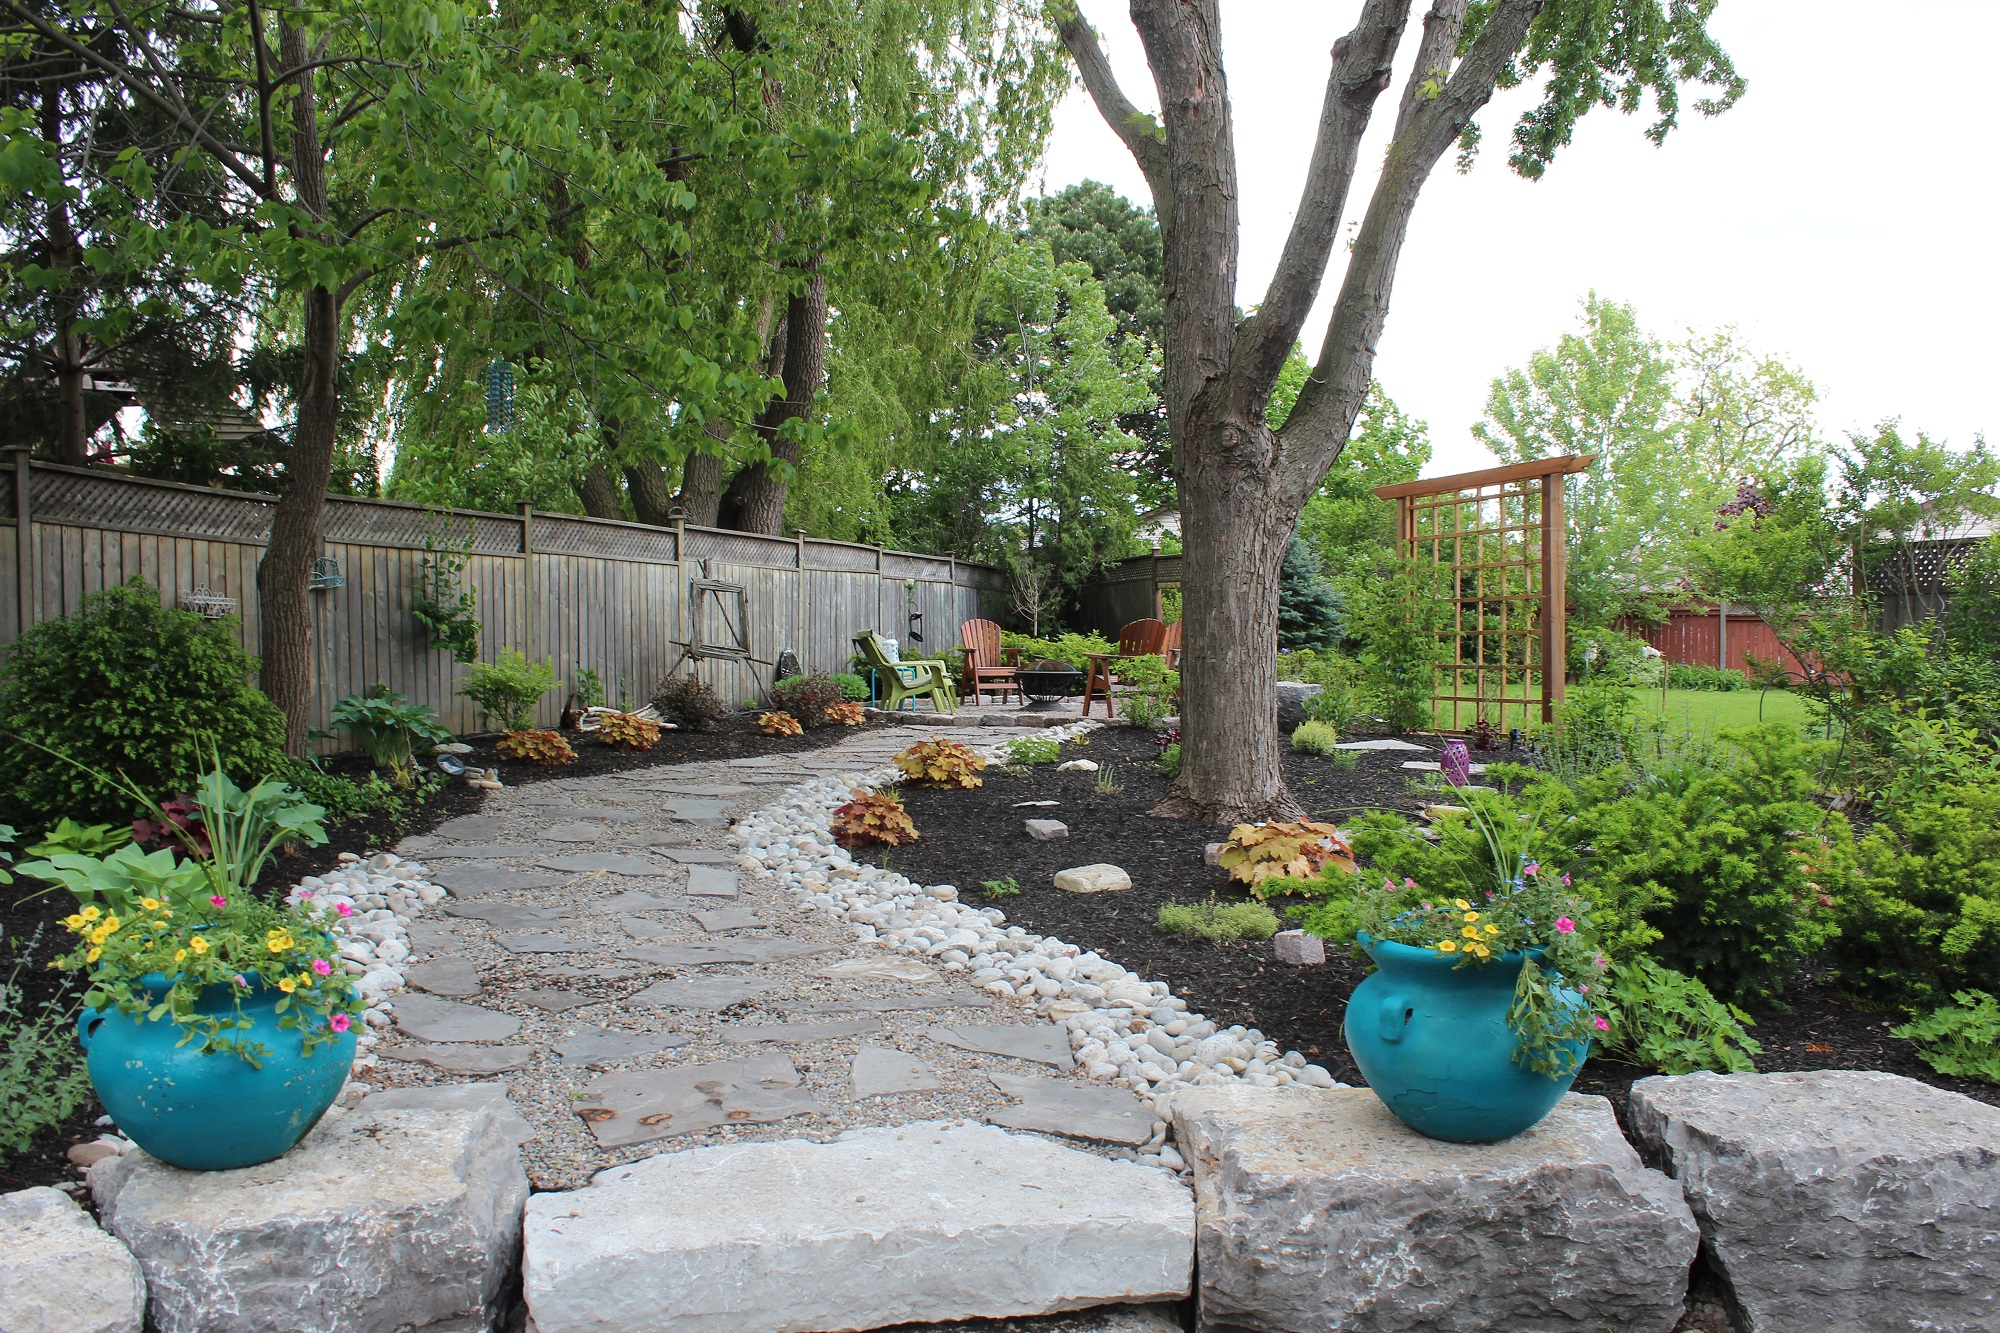 Garden and landscape design services in pickering ajax for Home depot landscape design service